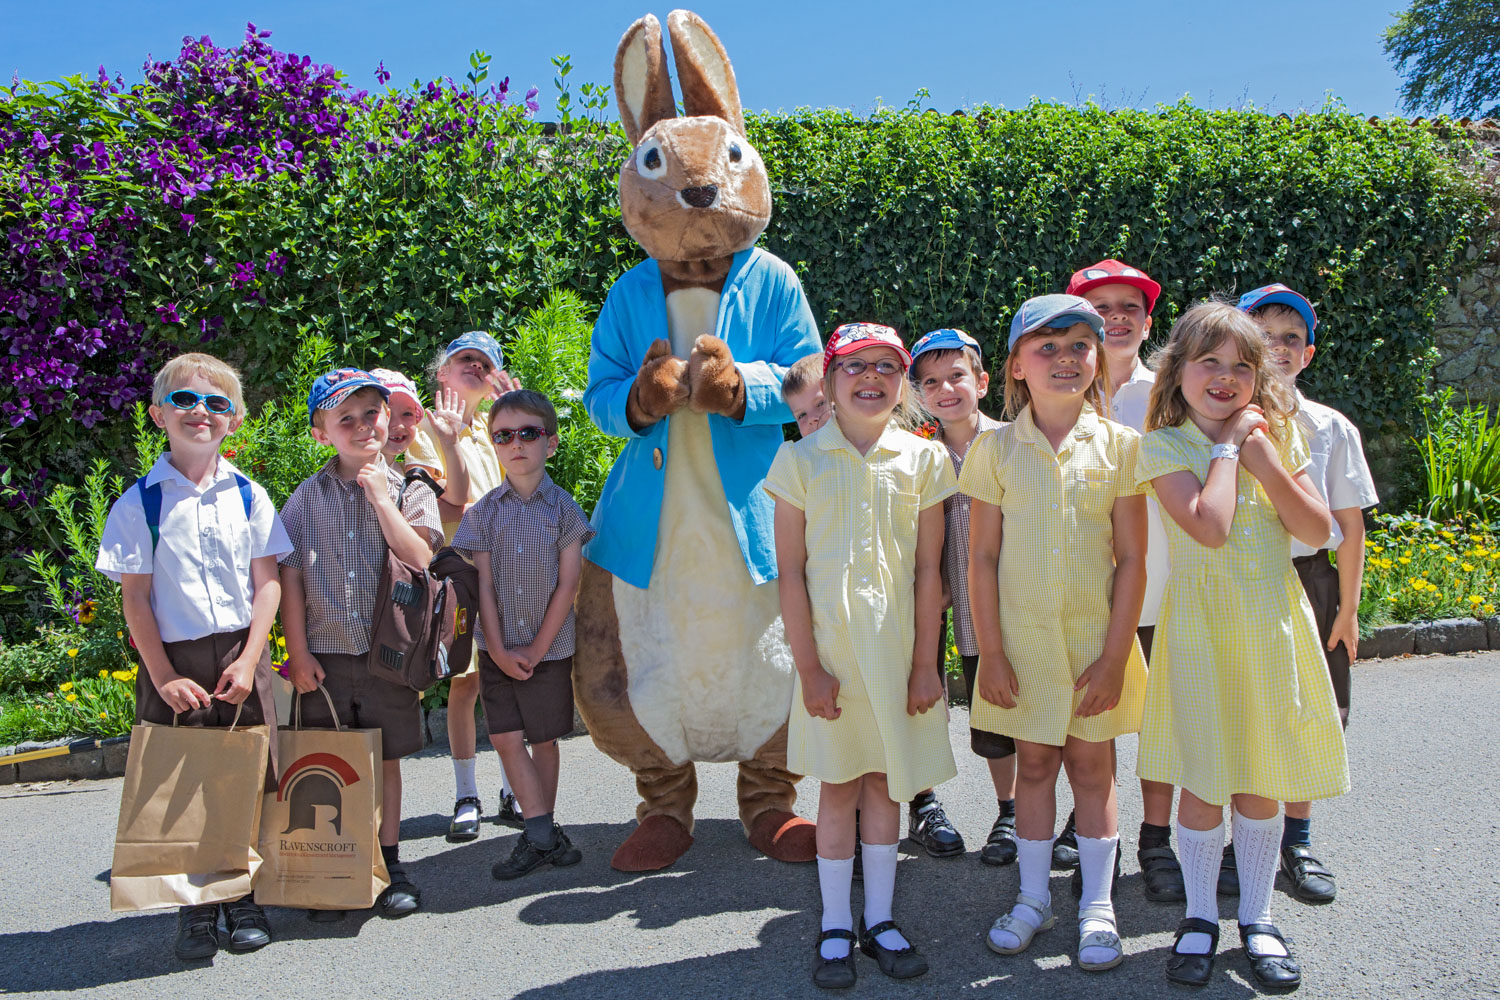 Peter Rabbit with primary school children in Saumarez Park.  Photo copyrighted and provided with permission of Sealord Photography, Guernsey.